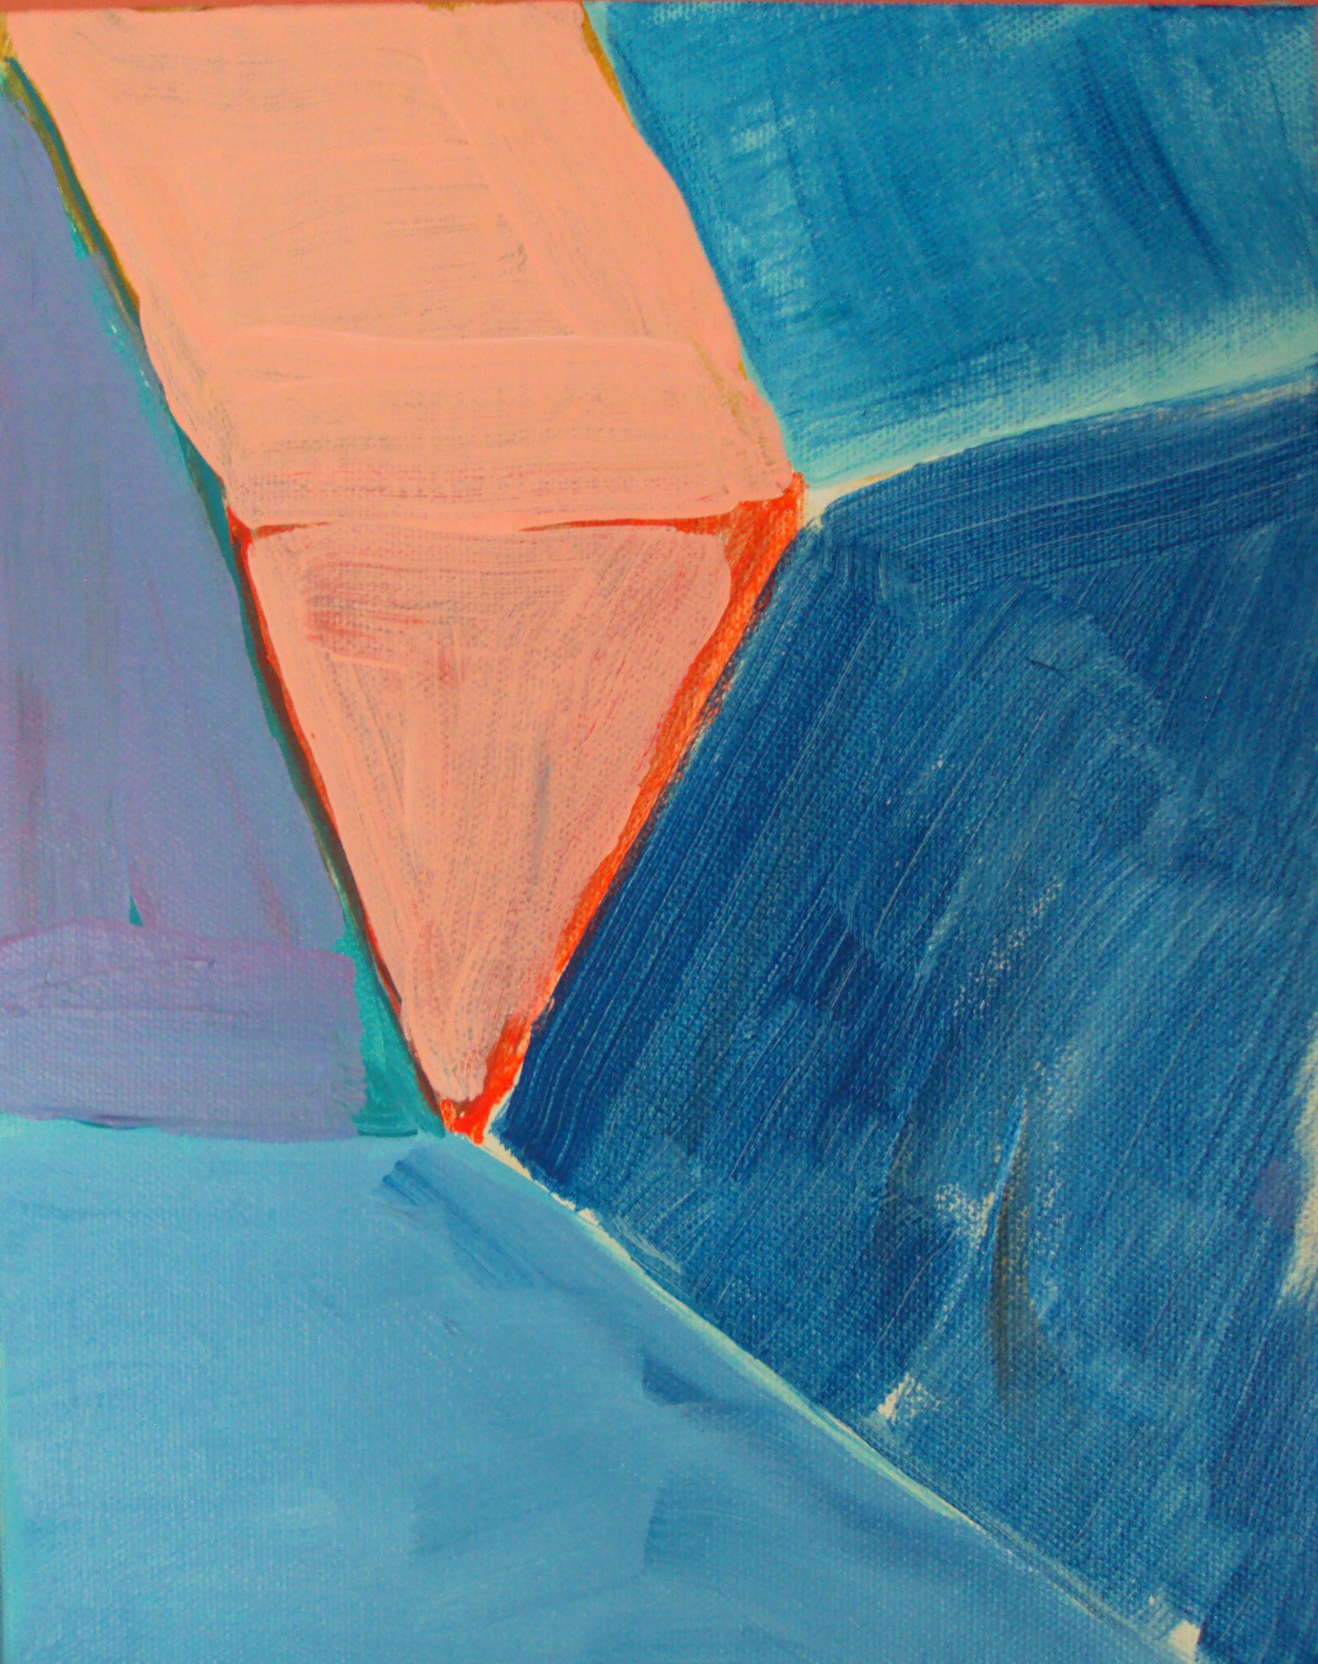 Golden Triangle Blue (2013)